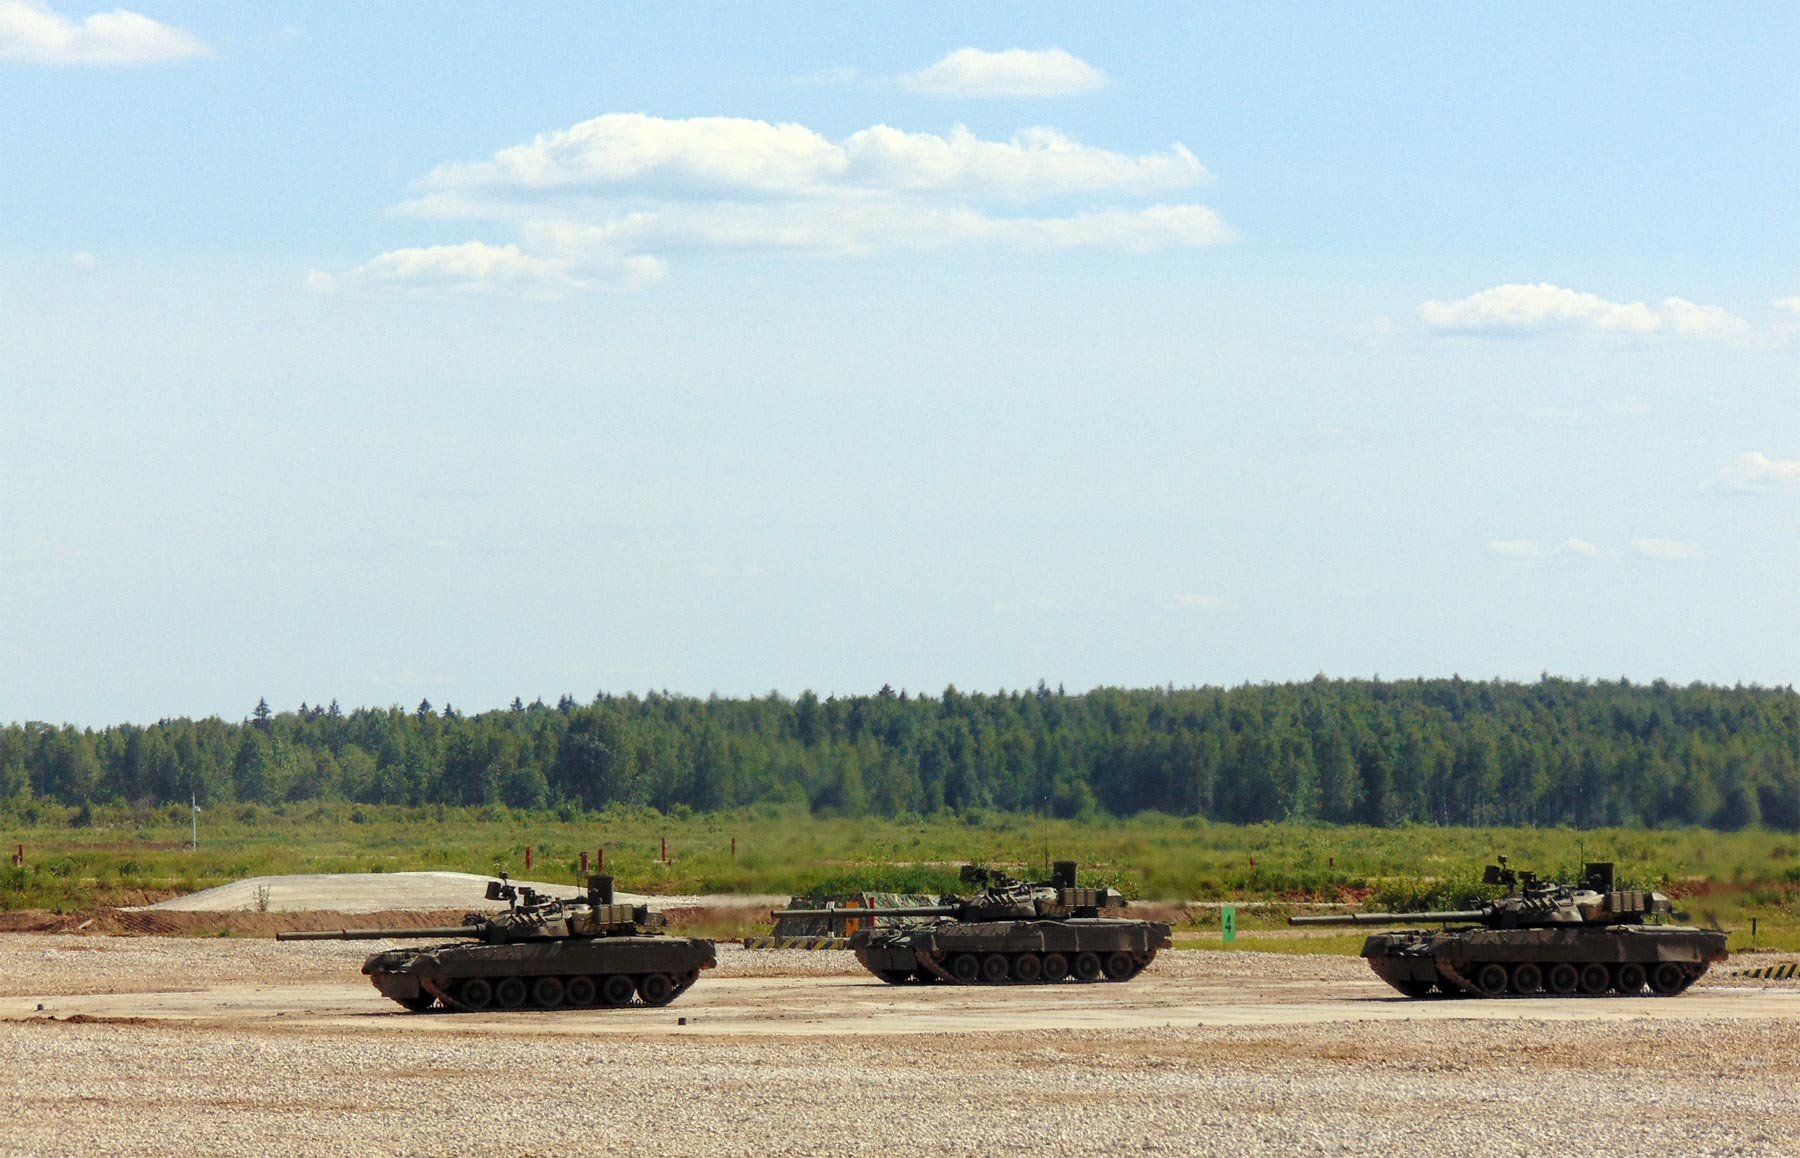 Russian tanks in action